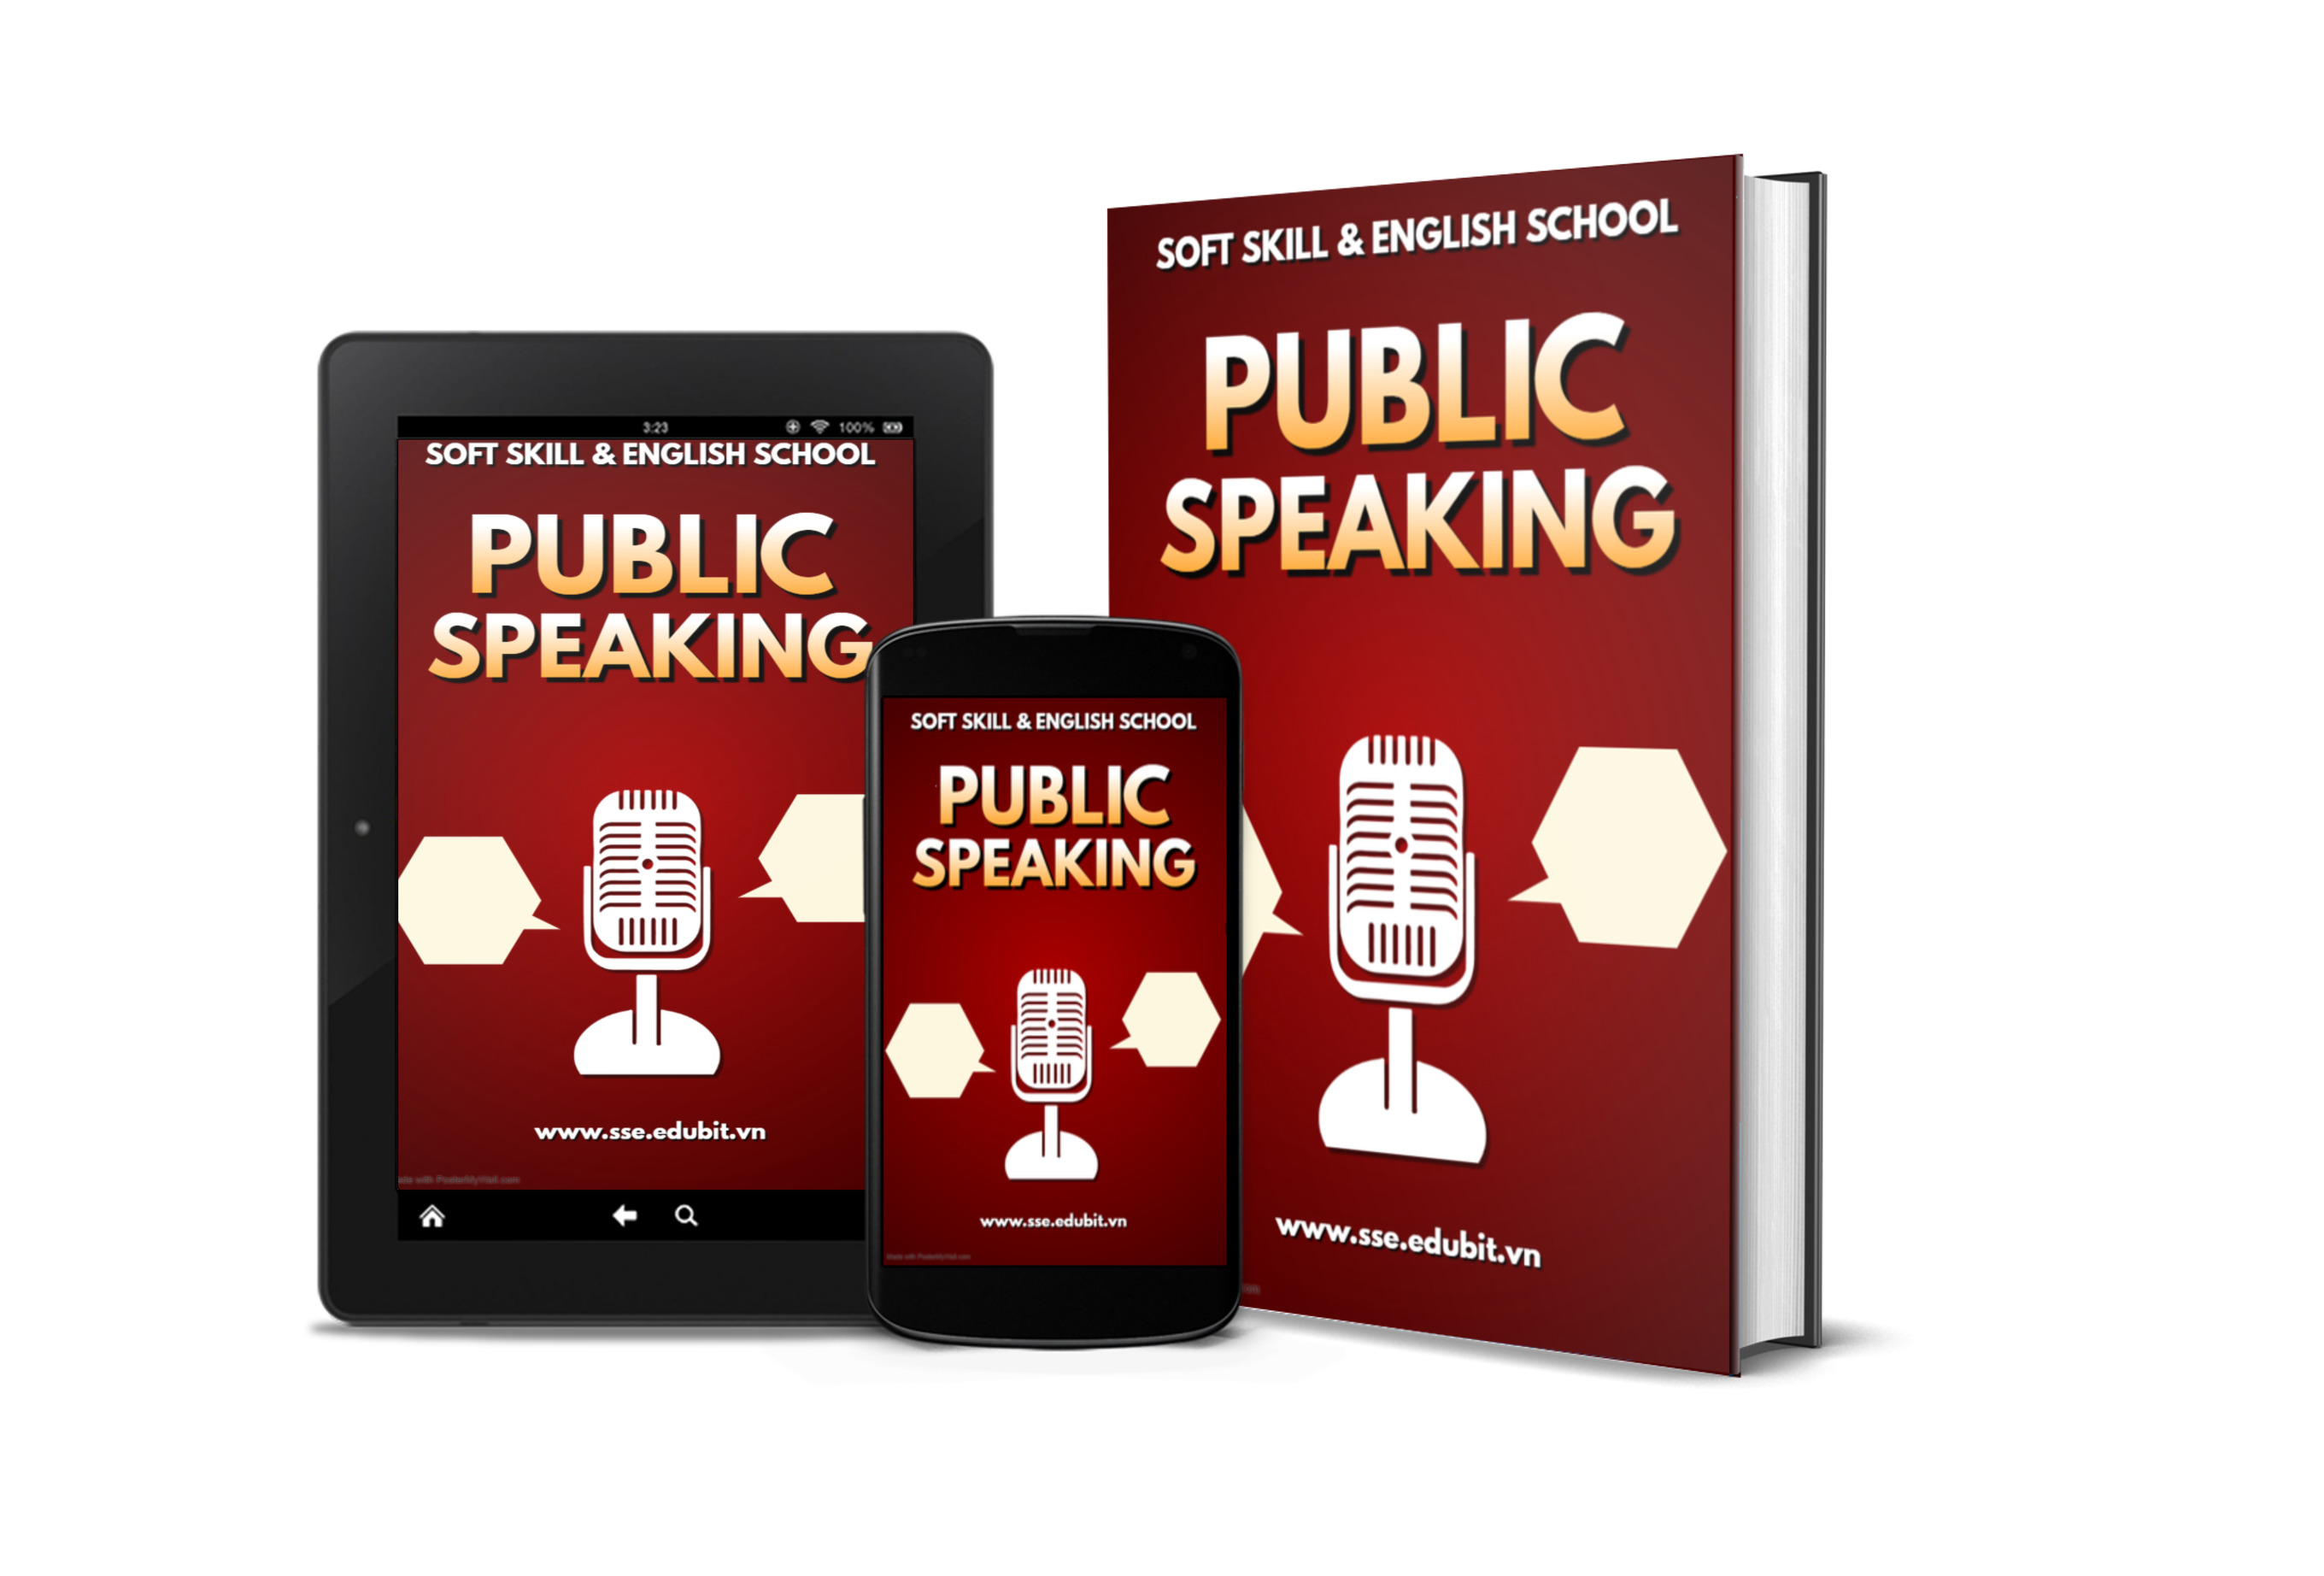 BOOK: PUBLIC SPEAKING